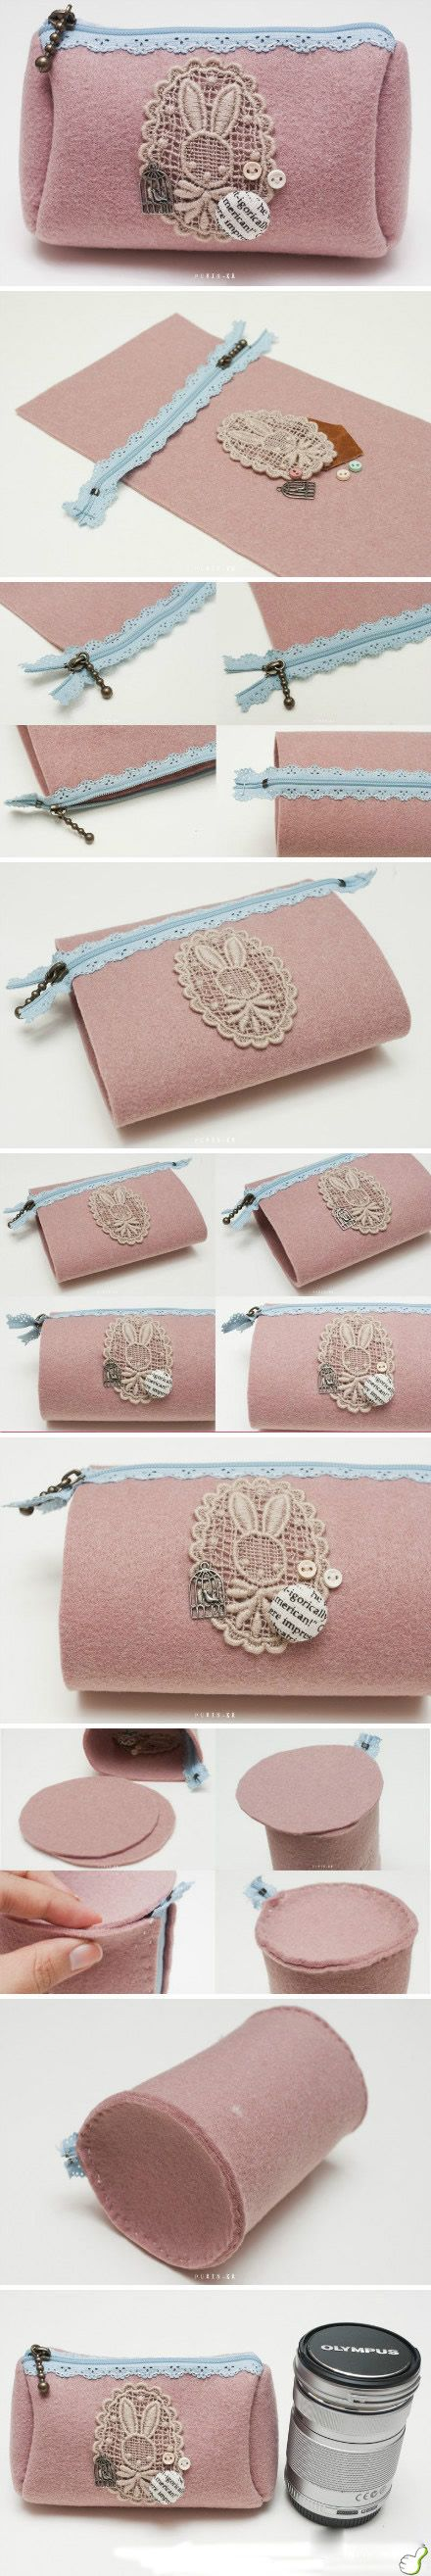 the cutest make up bag